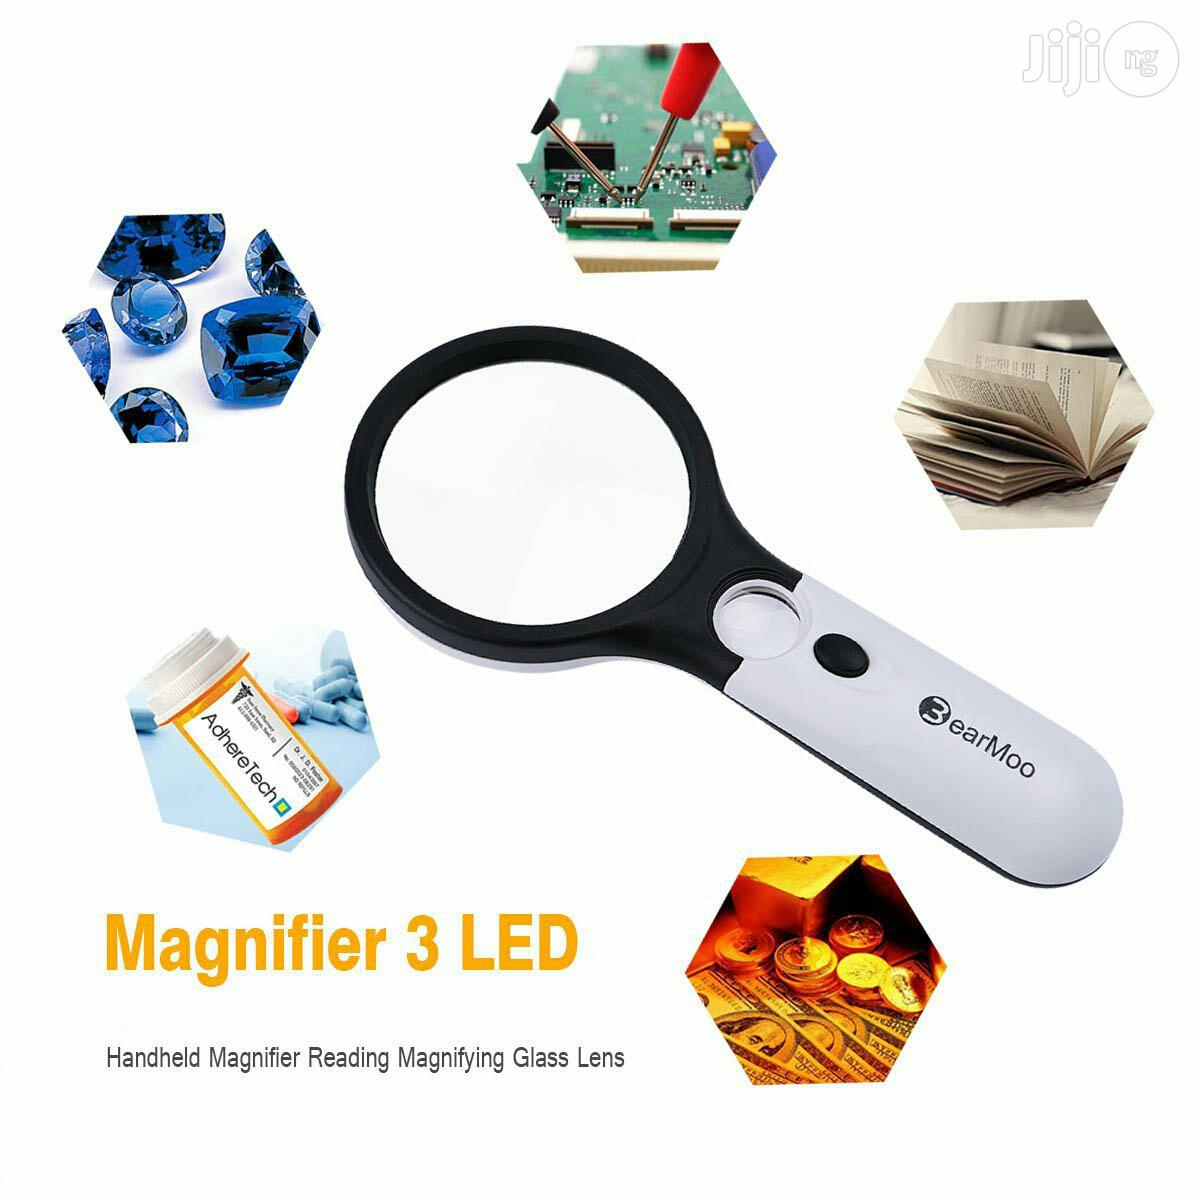 USA Magnifying Glass With Light Bearmoo Magnifier 3LED 3X 45X Handheld | Stationery for sale in Alimosho, Lagos State, Nigeria